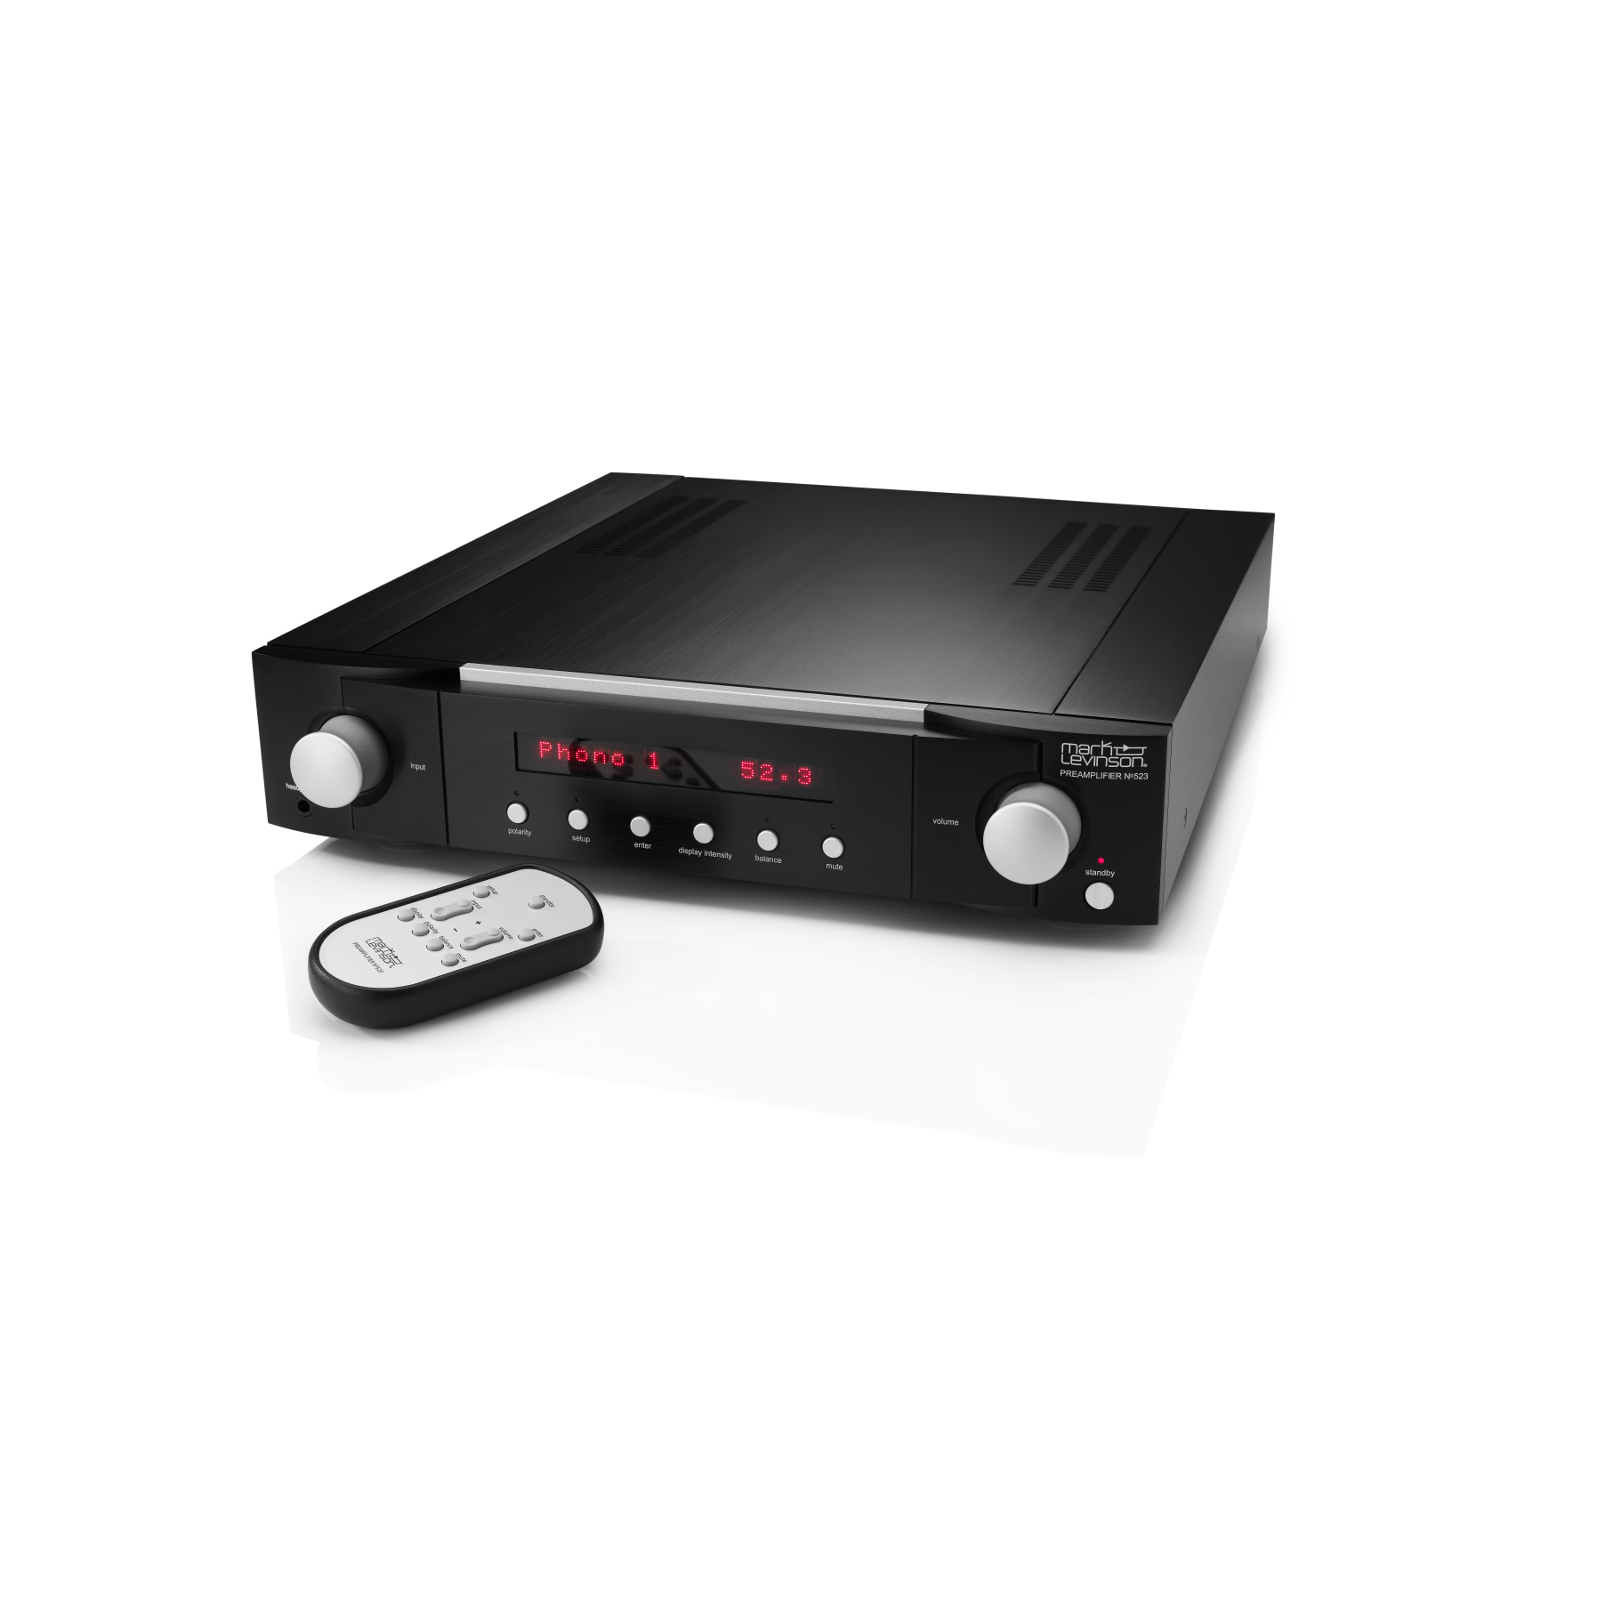 № 523 - Black - Dual-Monaural Preamplifier for Analog Sources - Hero